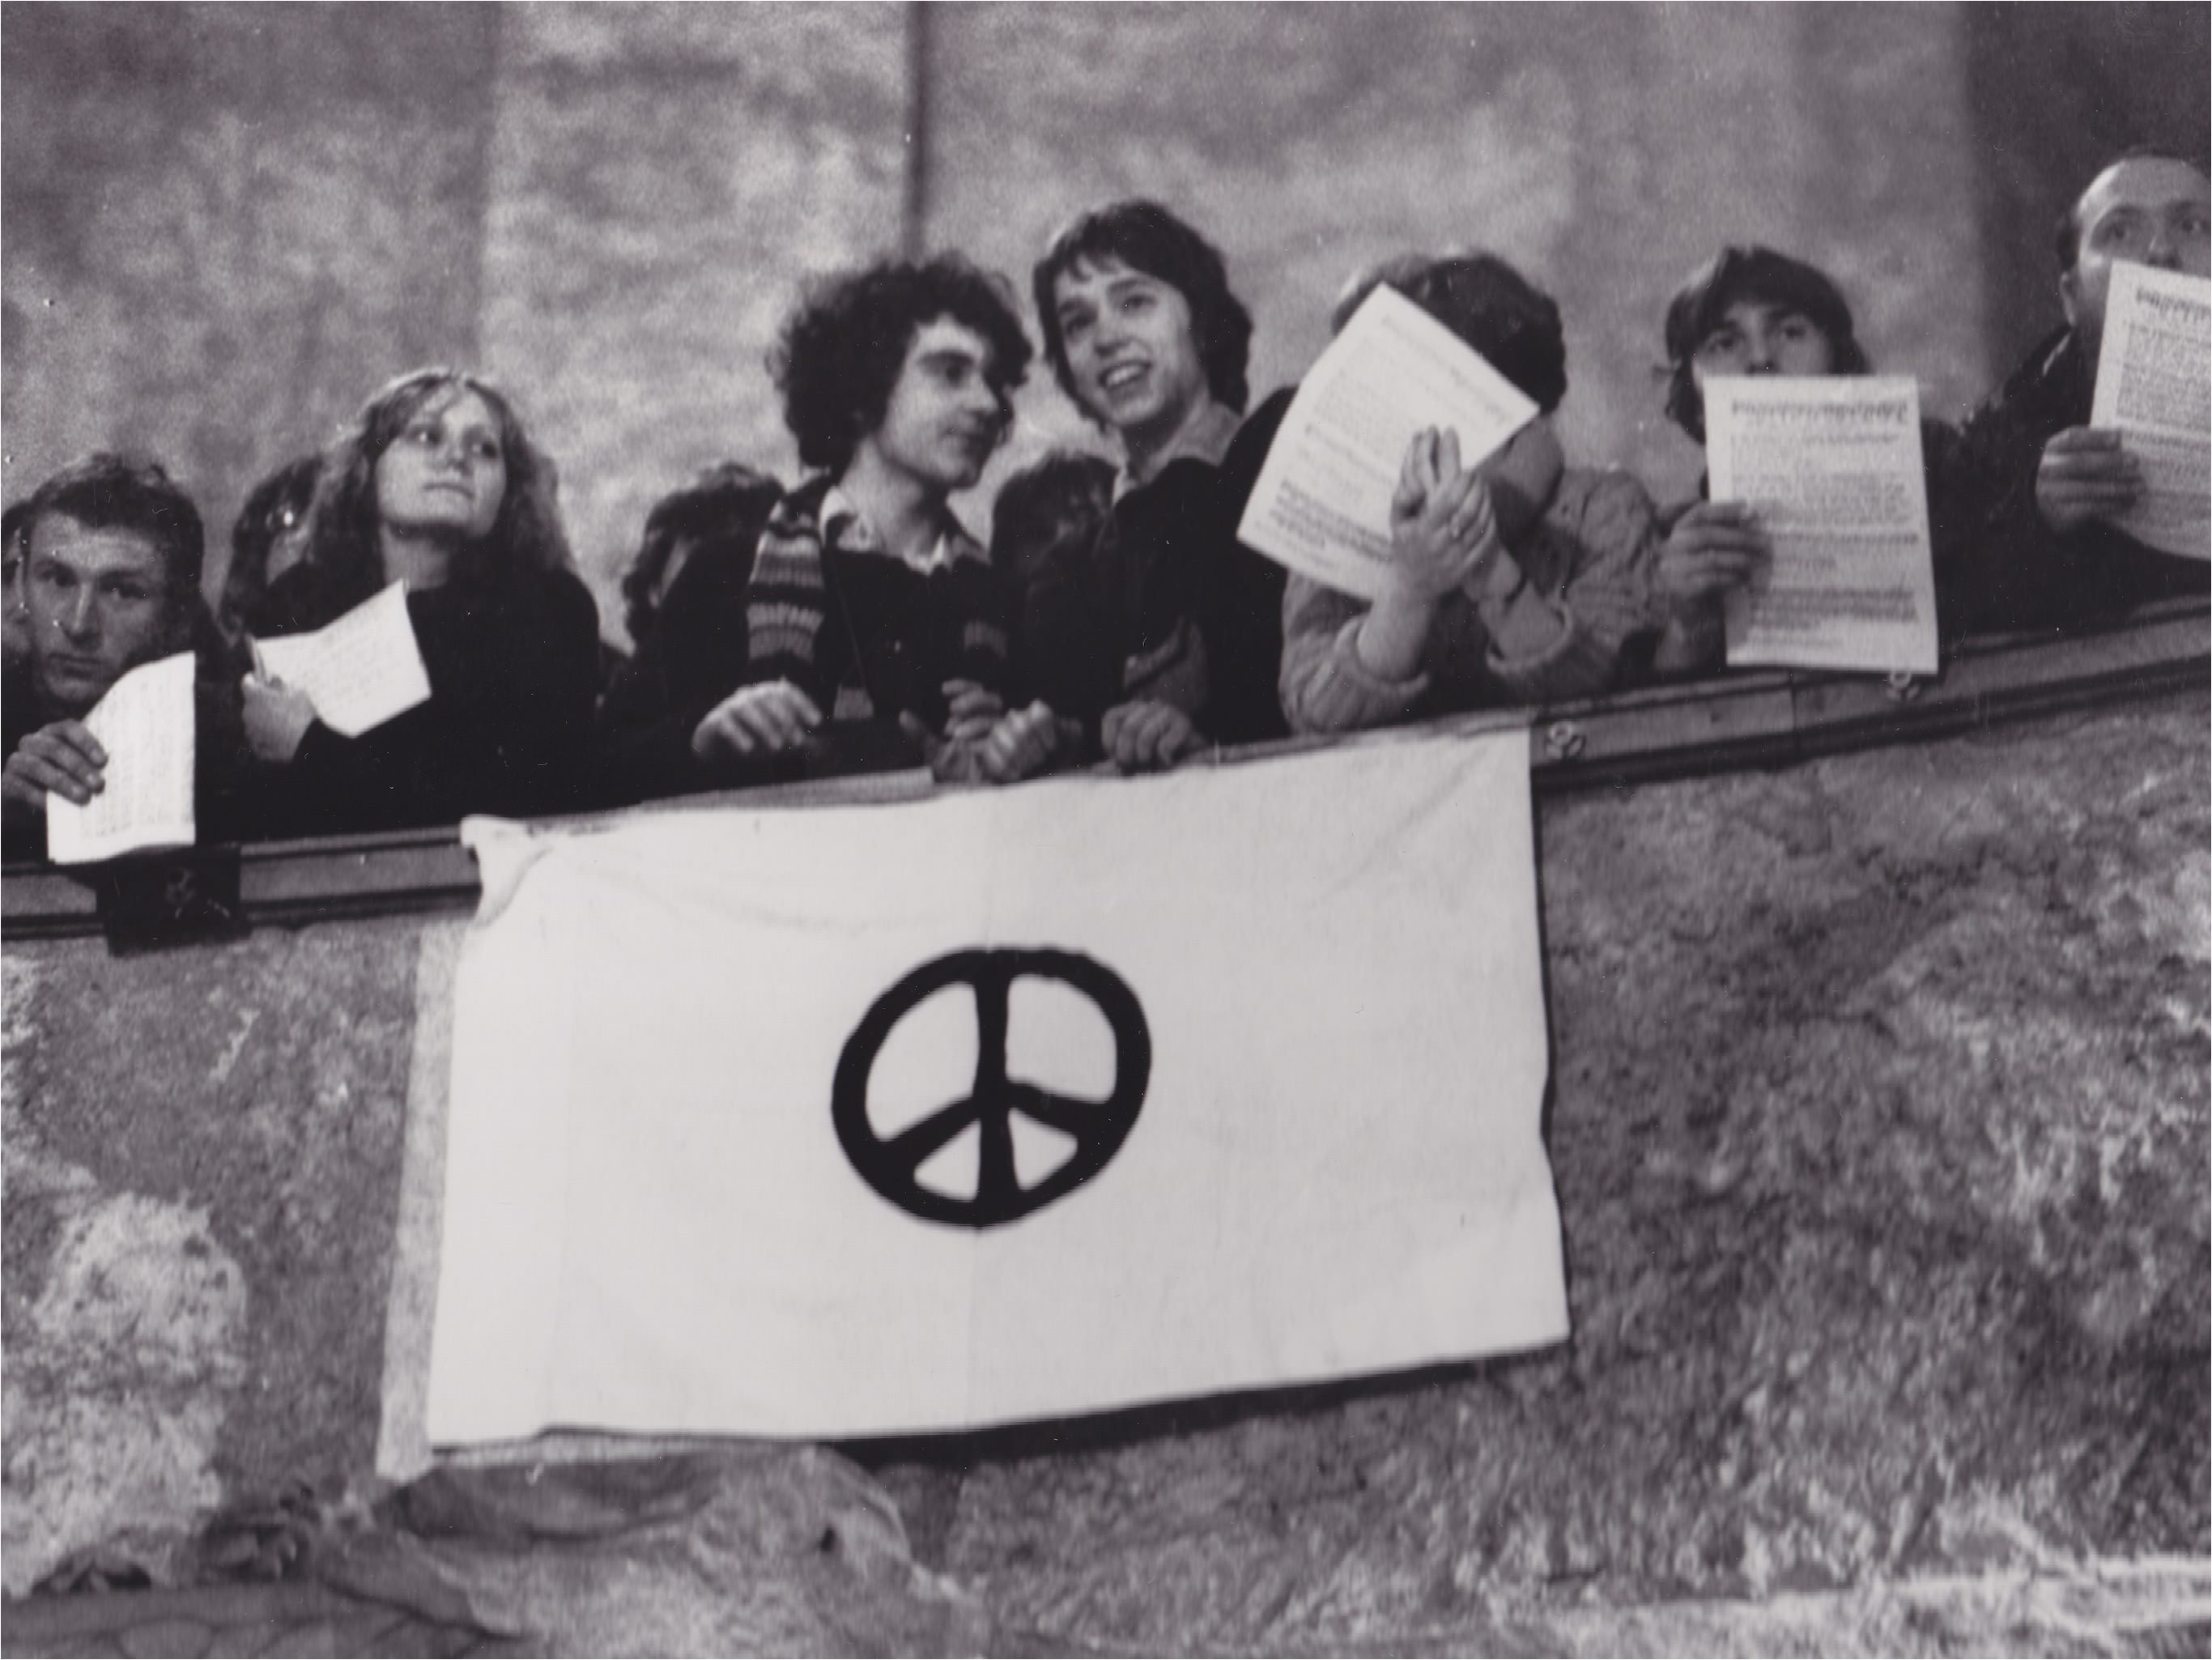 Students appear here at a 1982 Peace Forum in Dresden, East Germany, displaying a universally recognized sign for peace